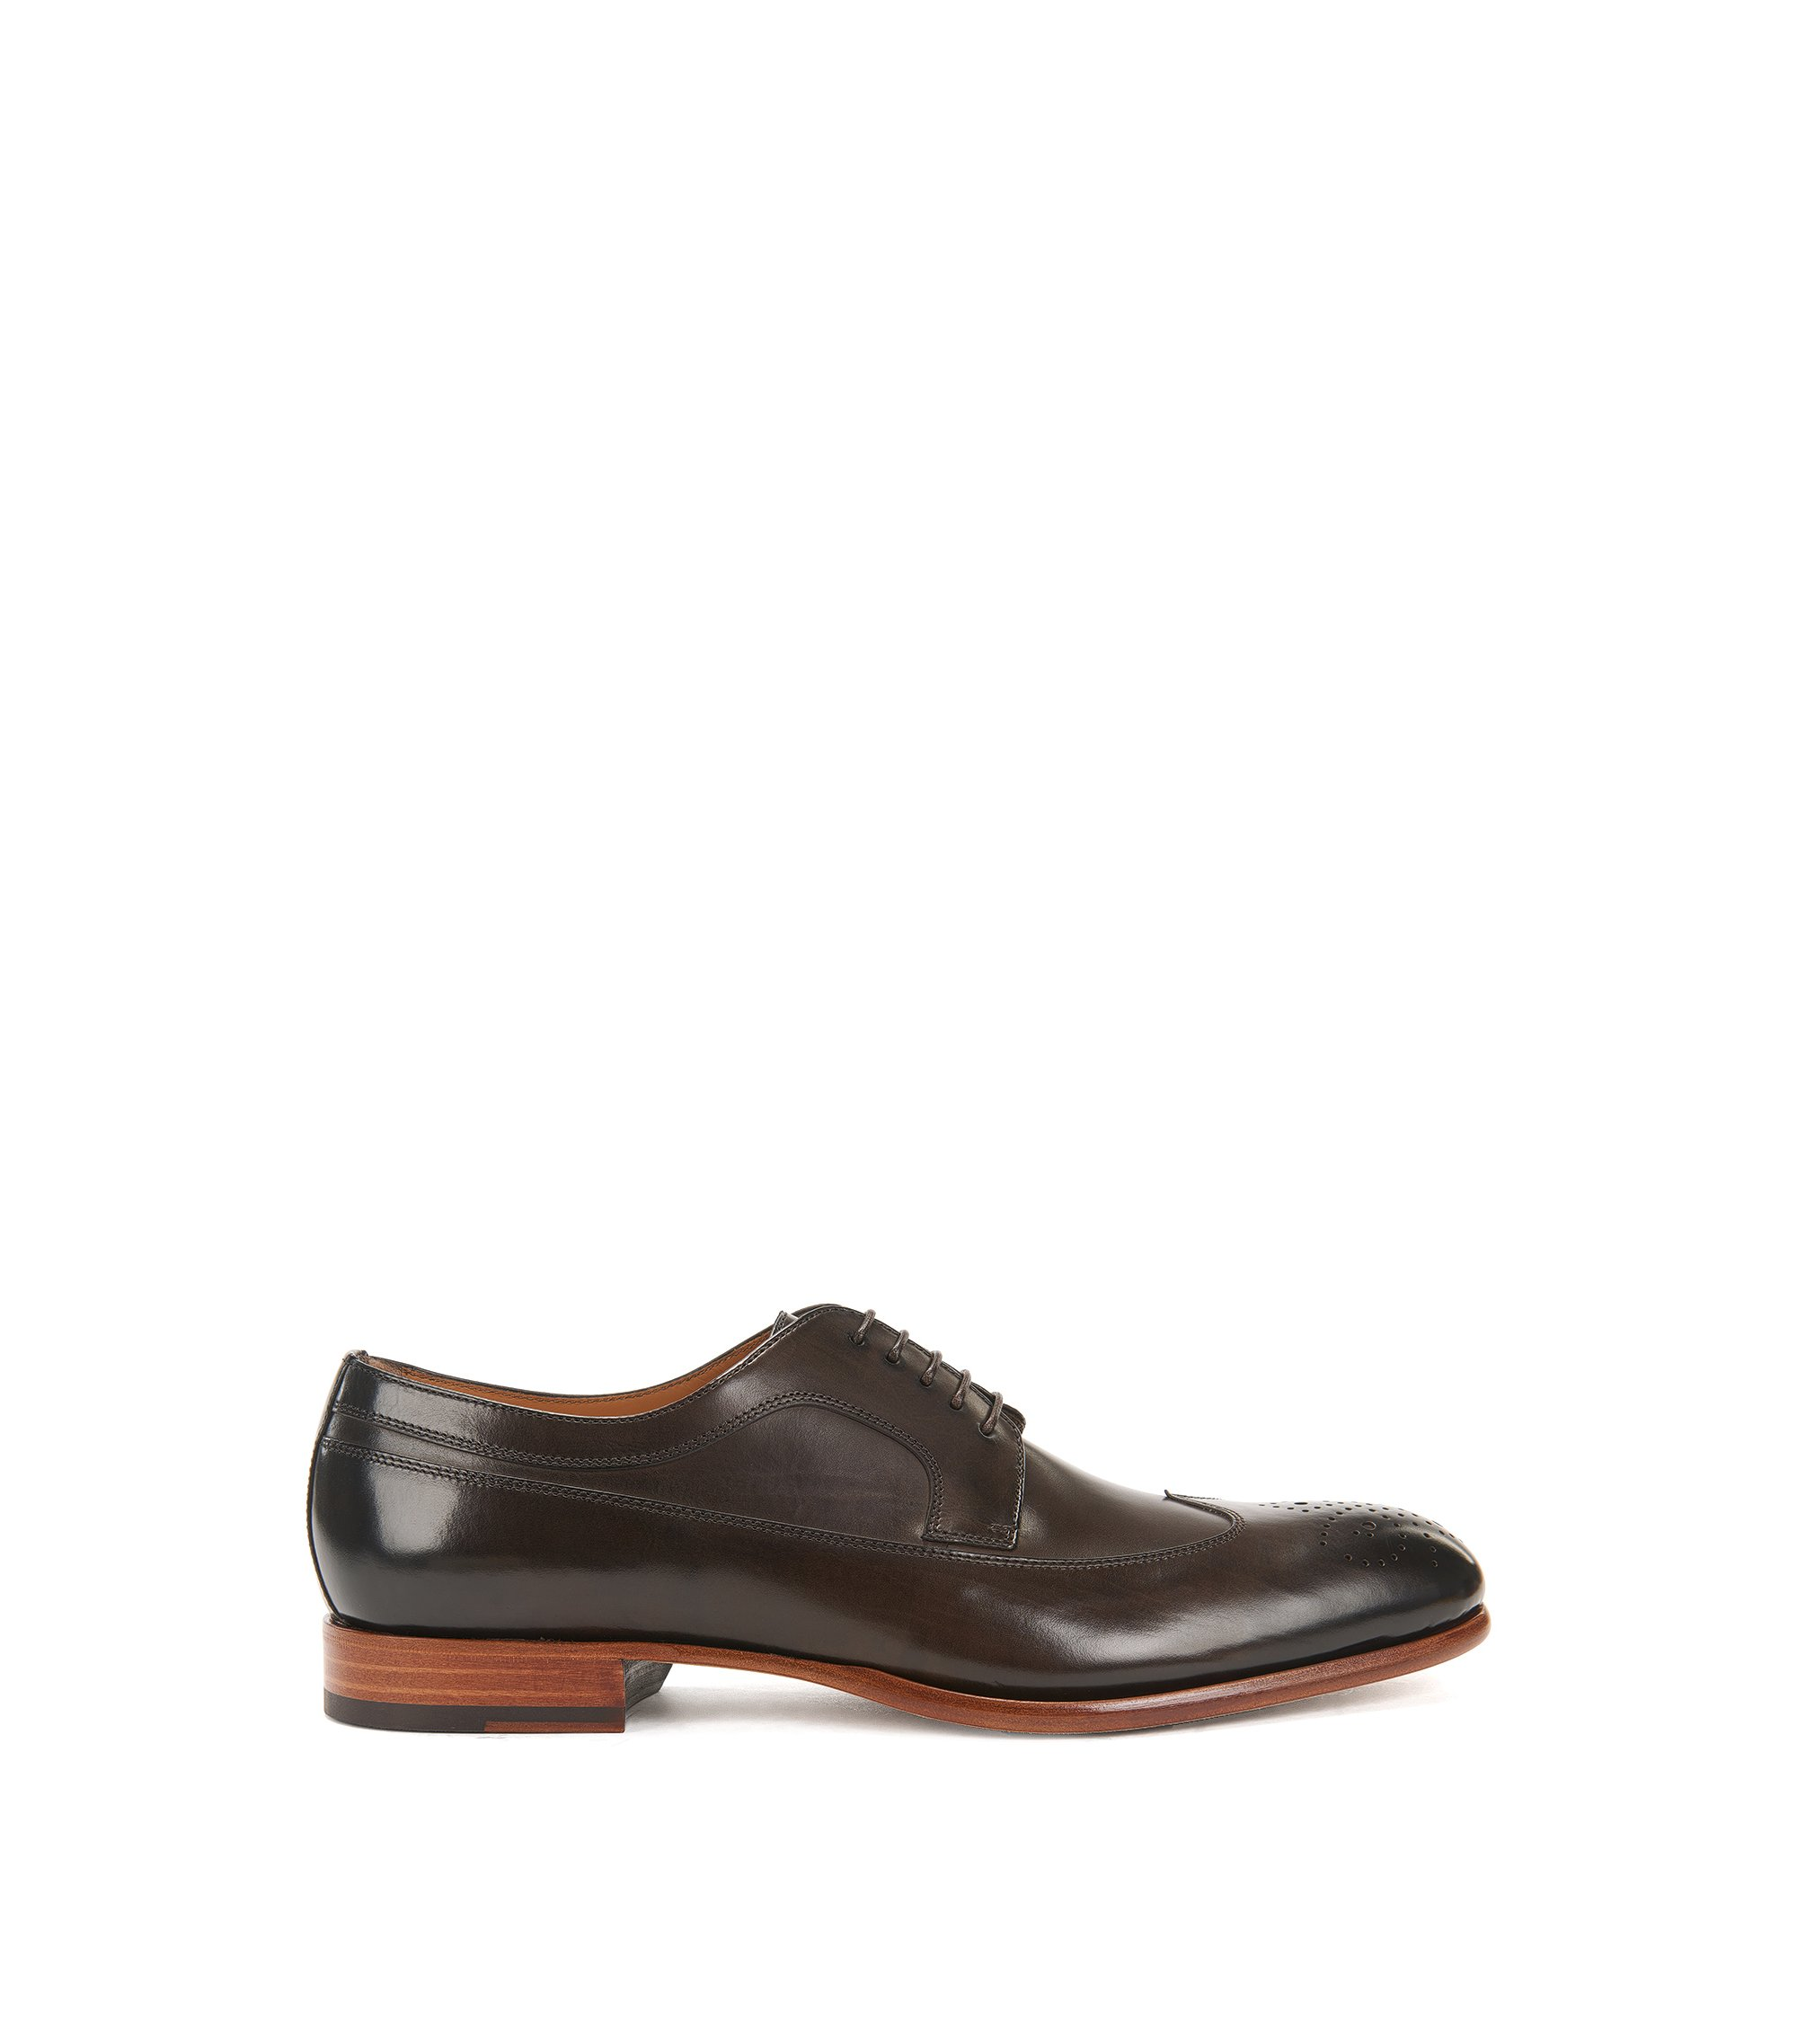 Leather Derby shoes with brogueing, Dark Brown